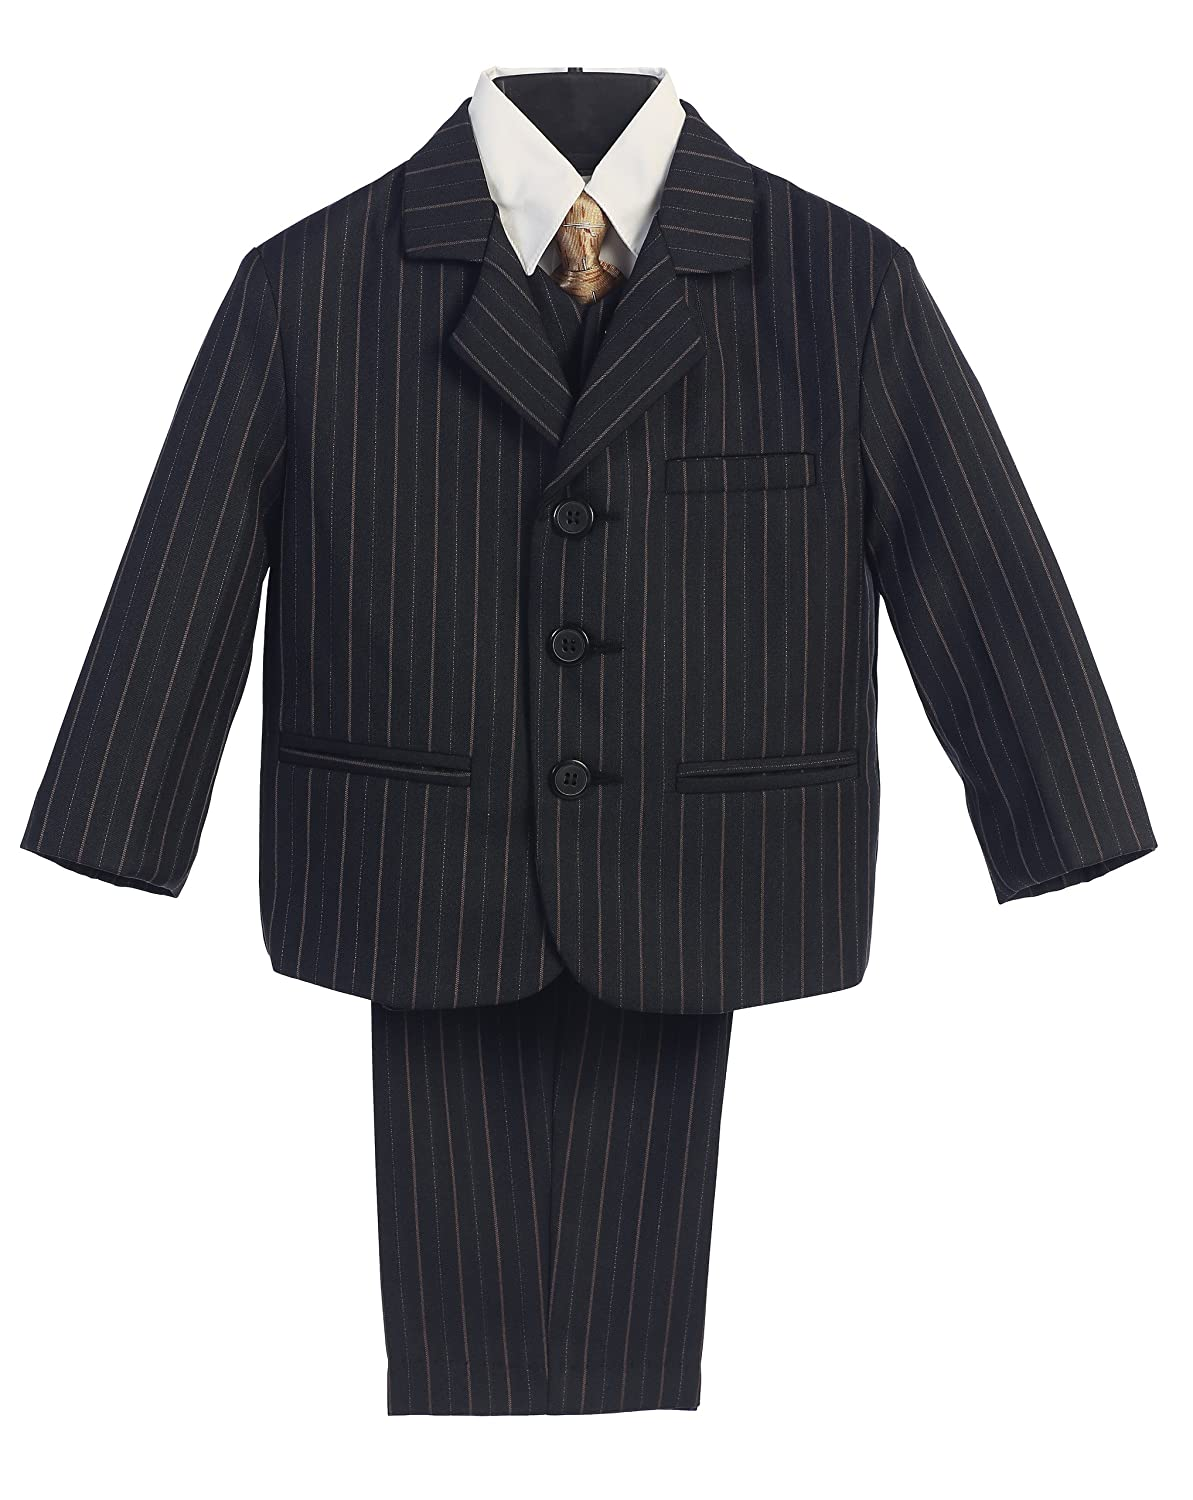 Size 2T 5 Piece Black with Gold Pin-Striped Suit with Gold Tie